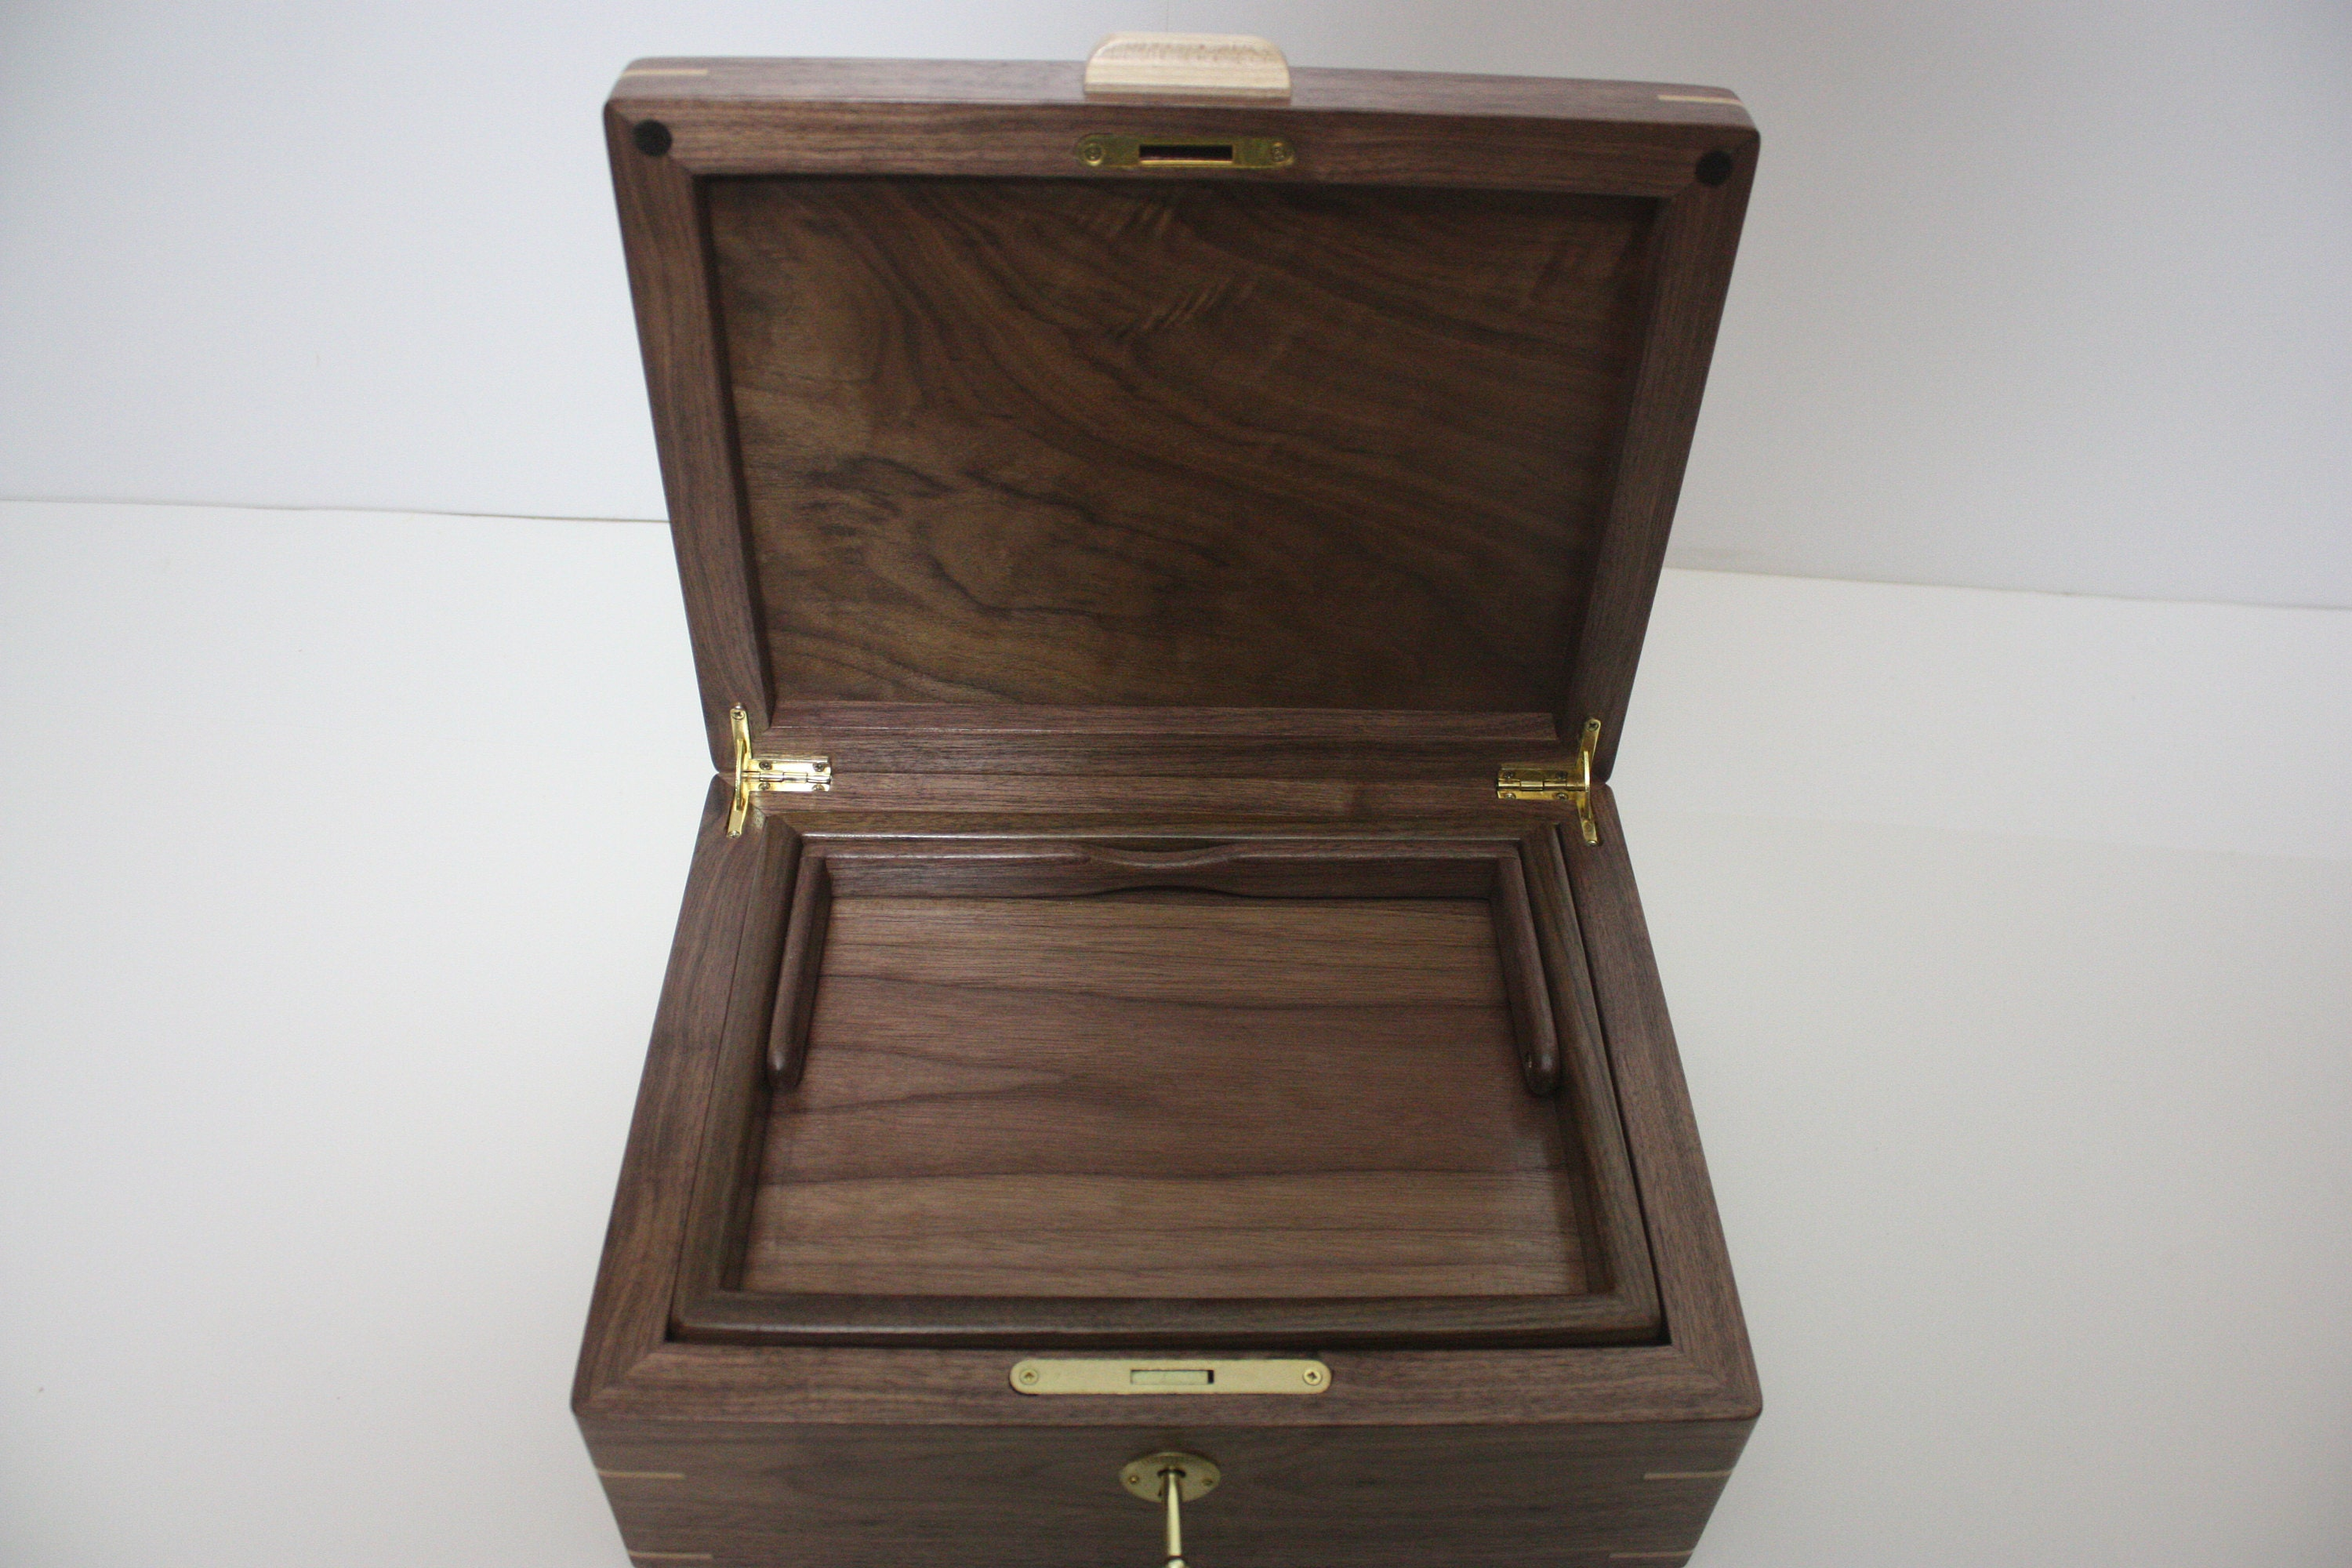 Wood Box with hinged lid